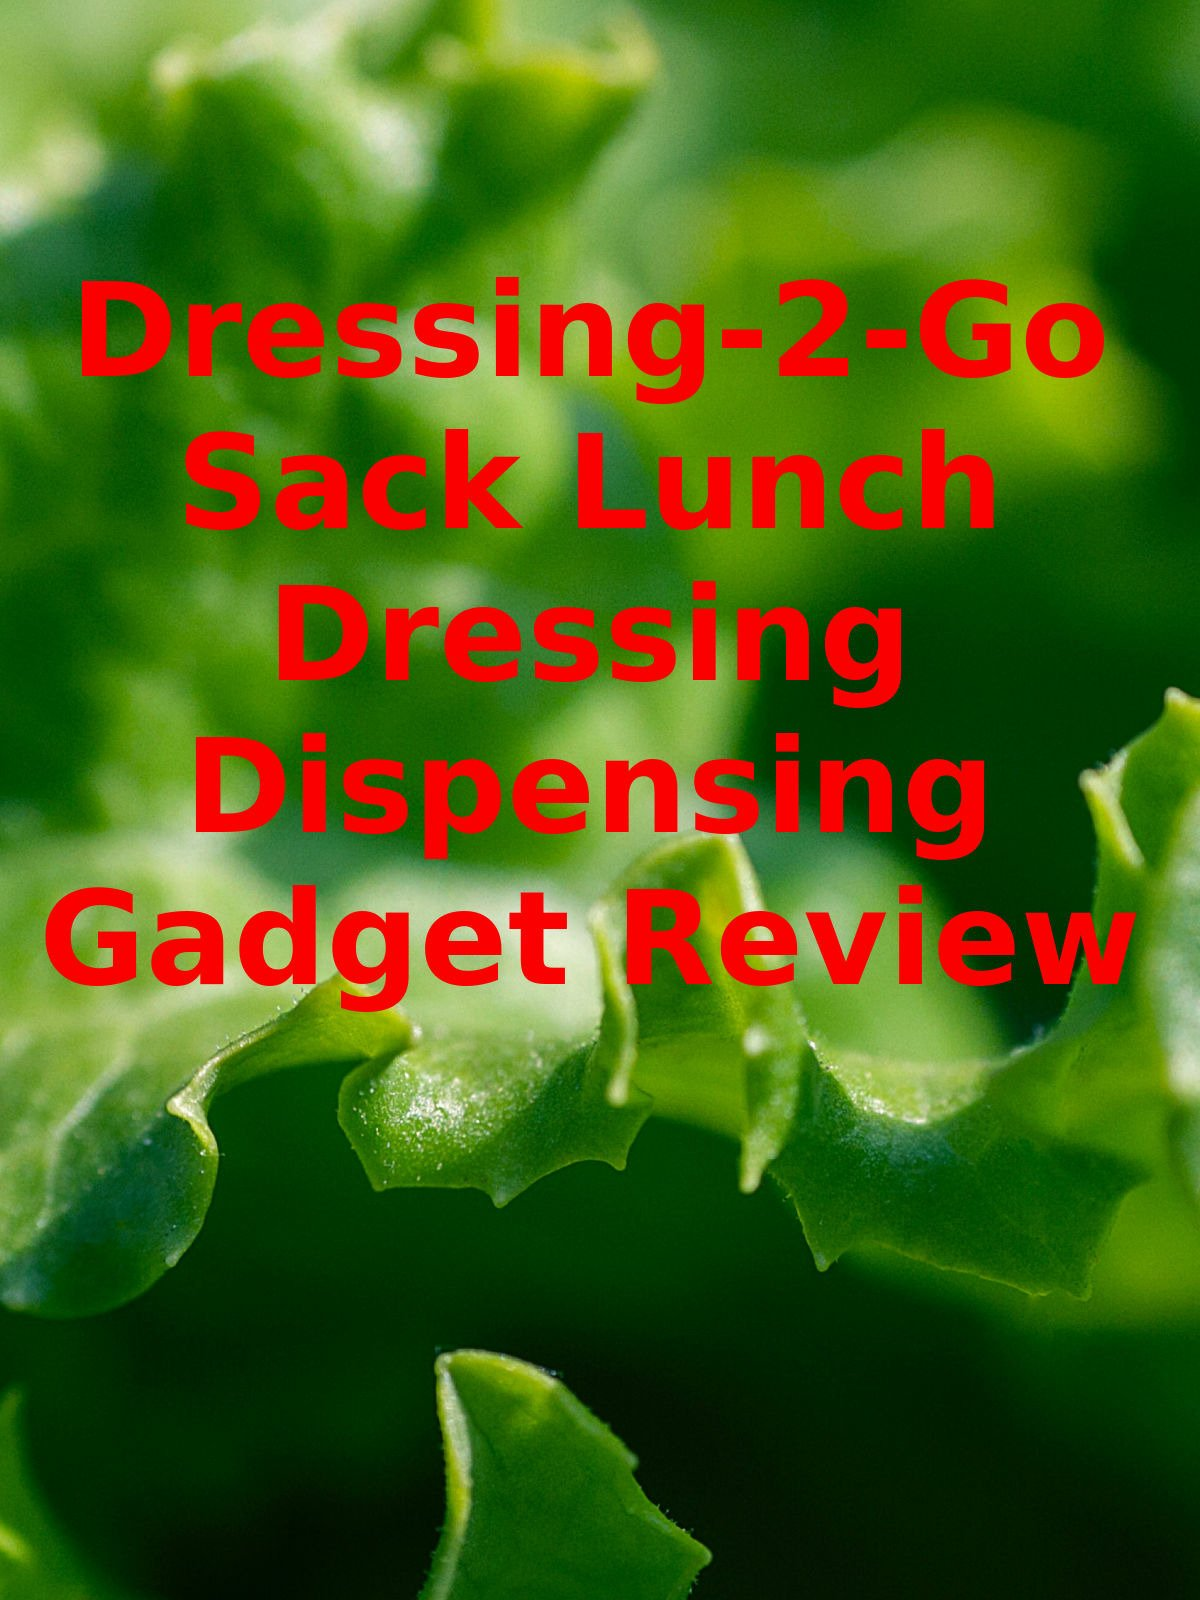 Review: Dressing-2-Go Sack Lunch Dressing Dispensing Gadget Review on Amazon Prime Video UK